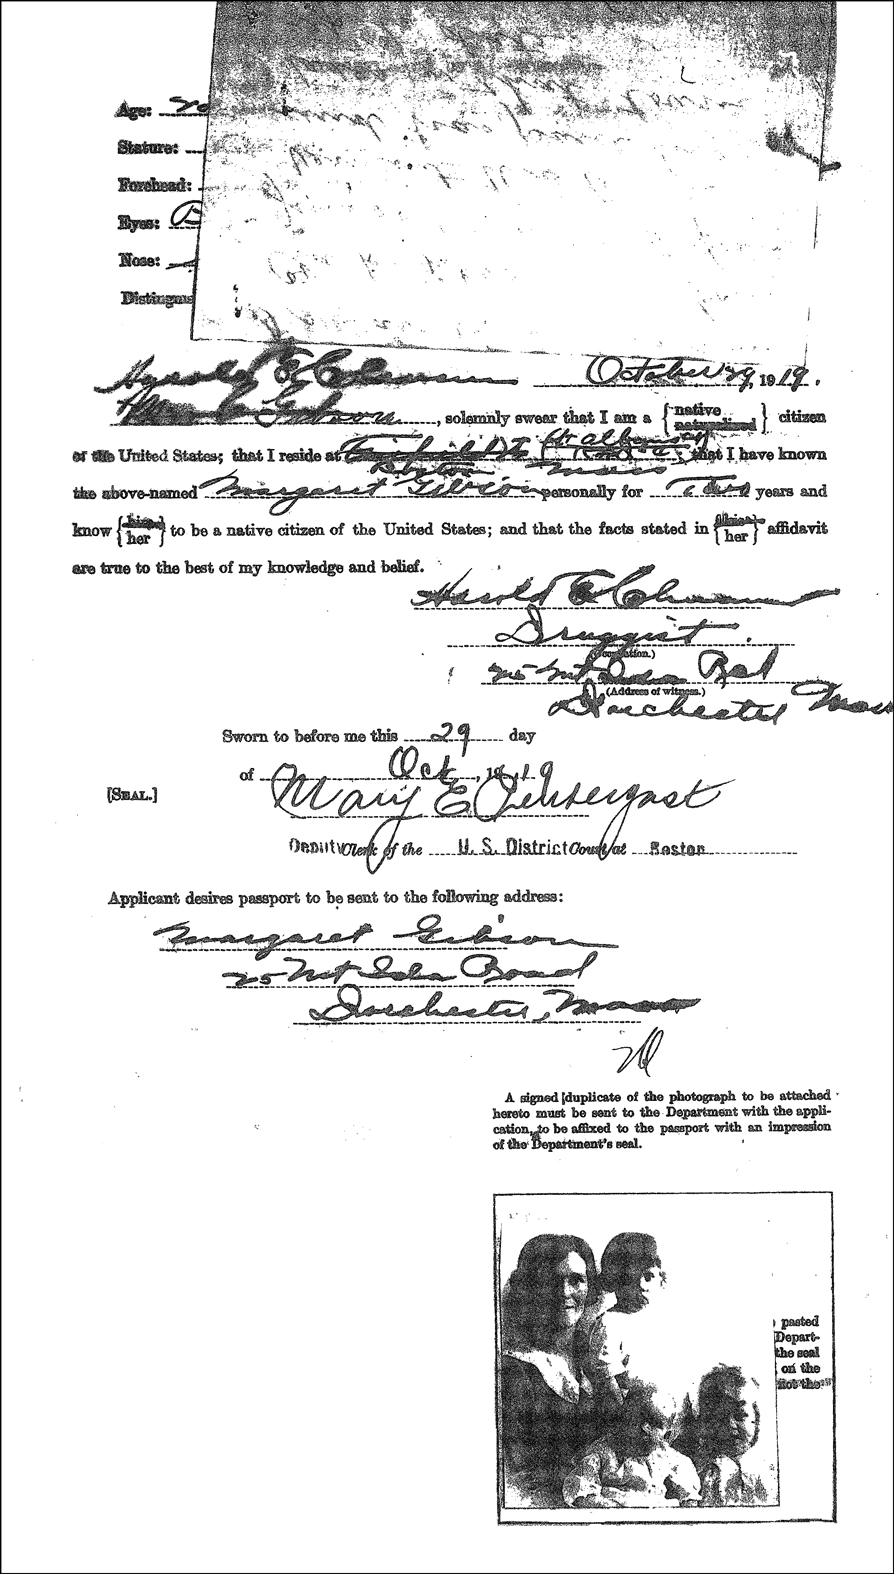 US Passport Application of Margaret Coyle Gibson - Back (Revealed)